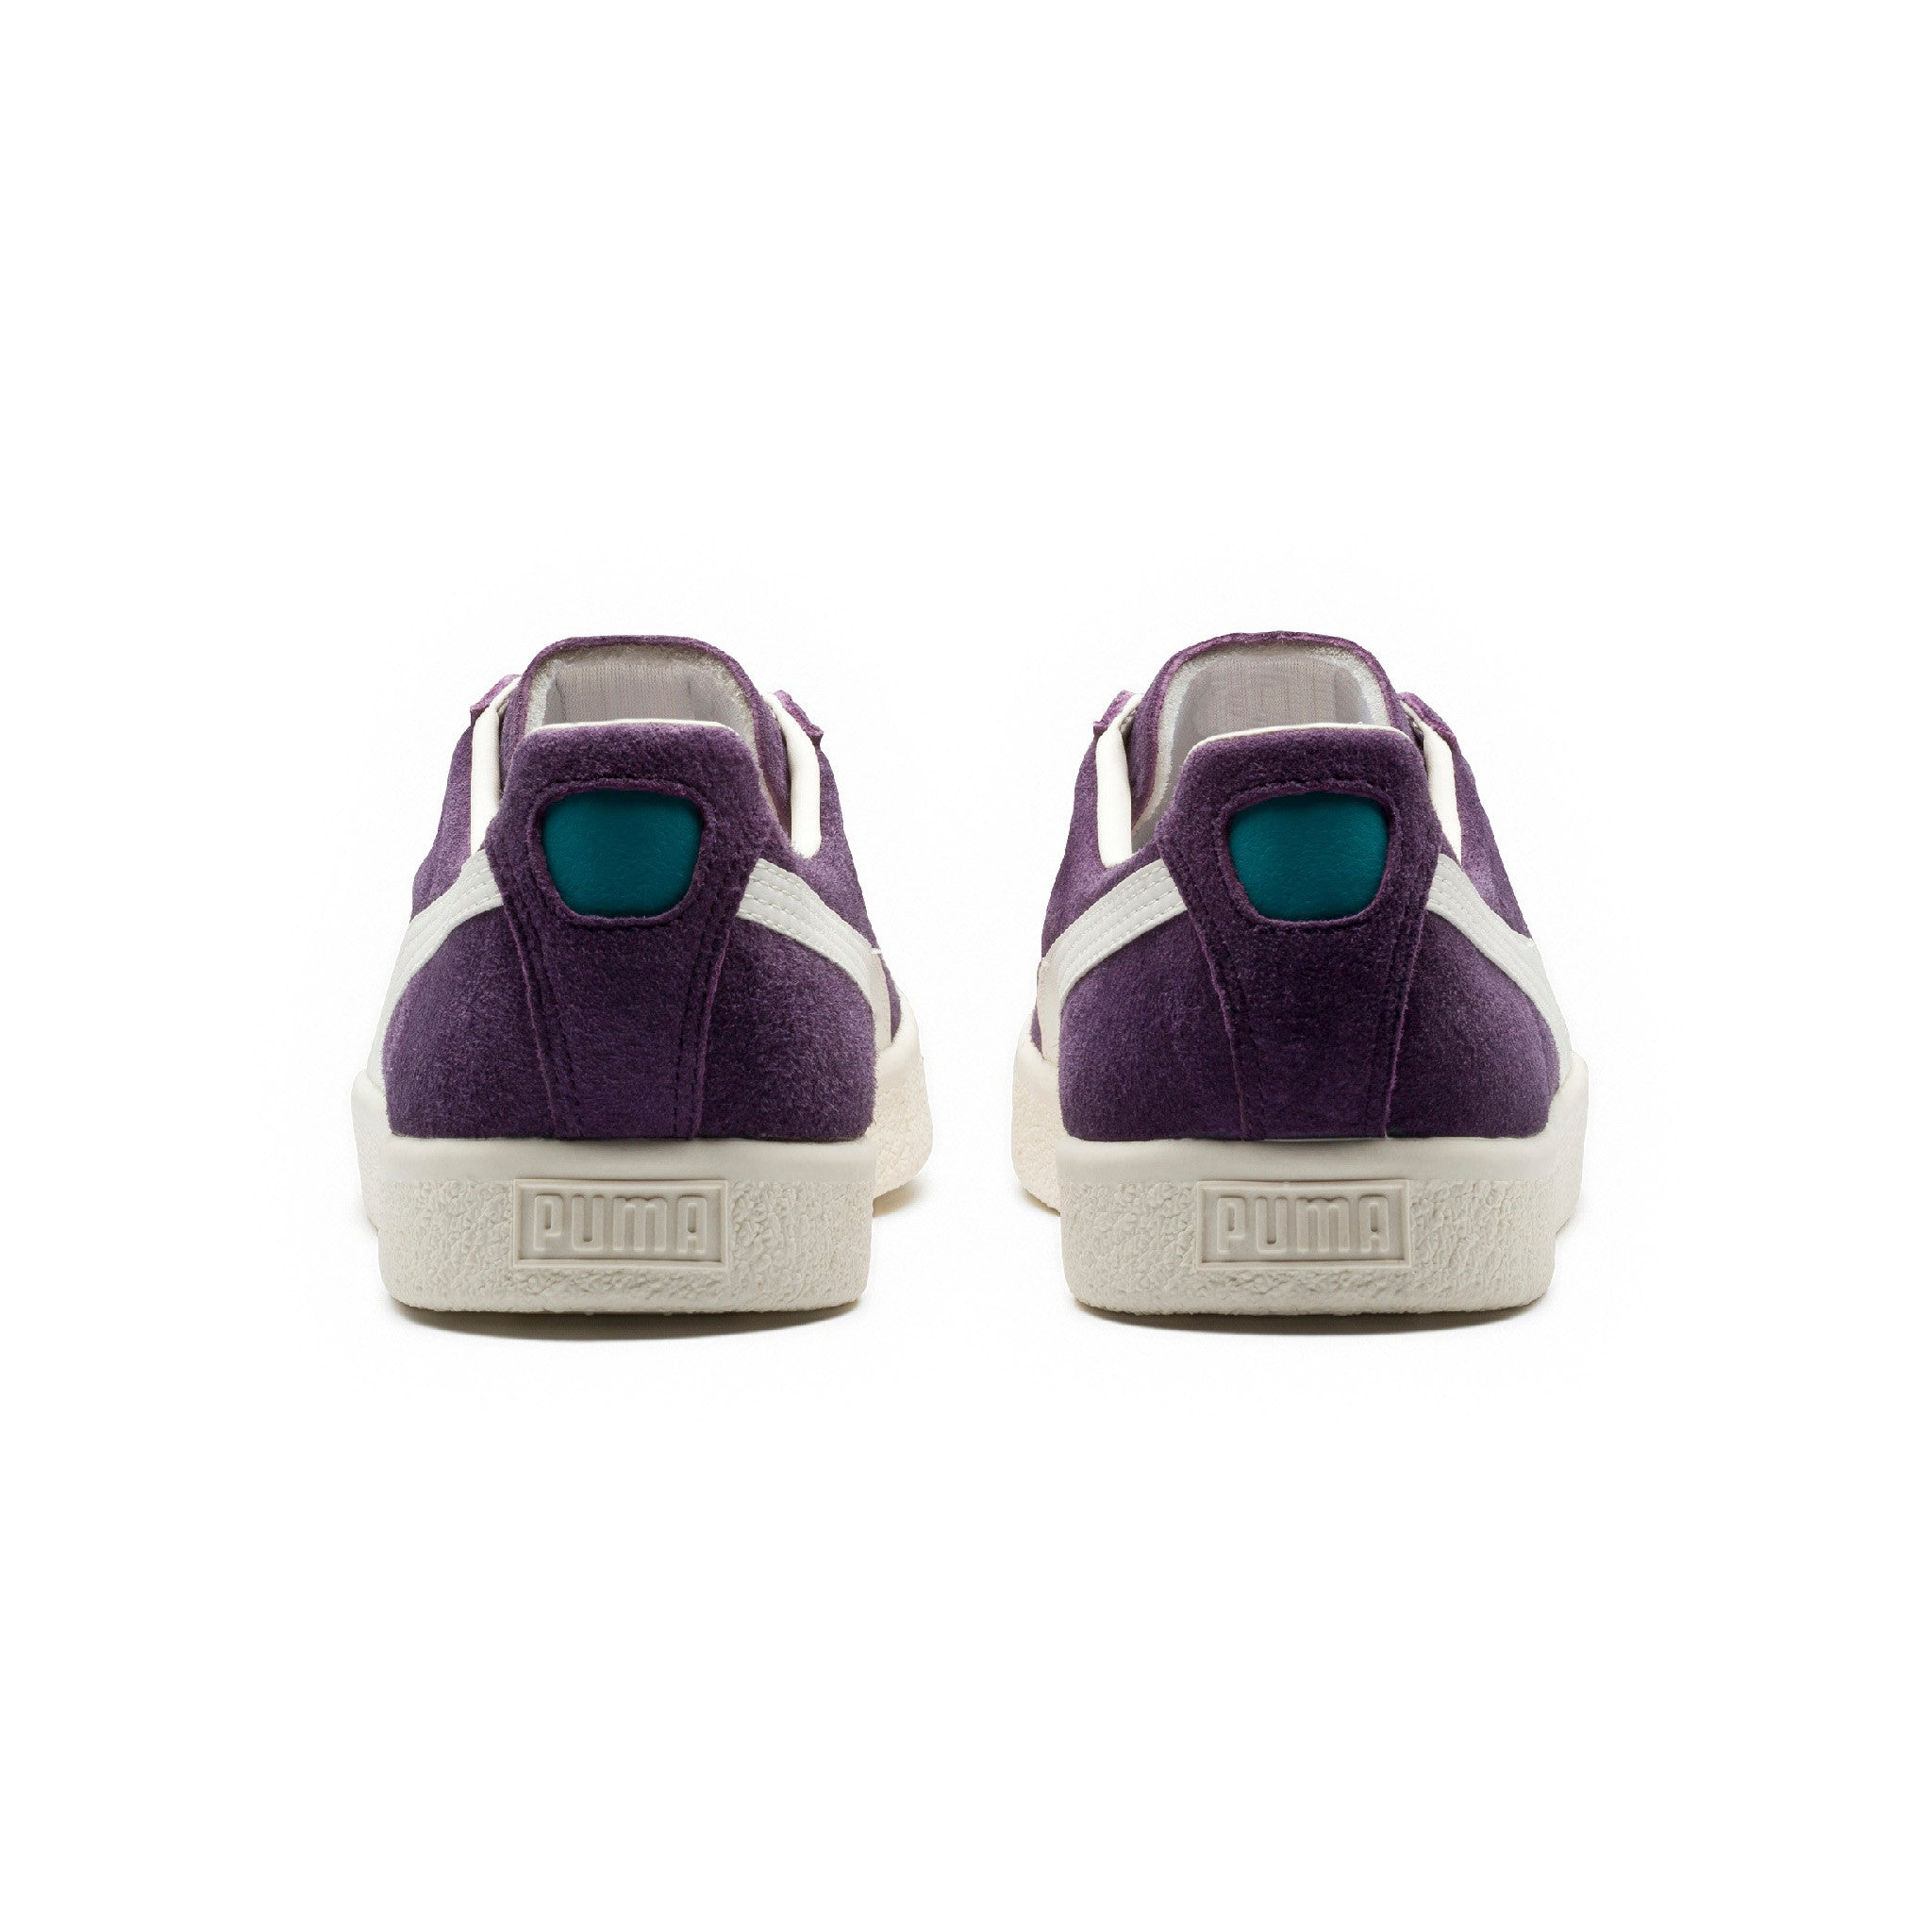 Clyde Premium Core Puma Sneakers Purple Back View